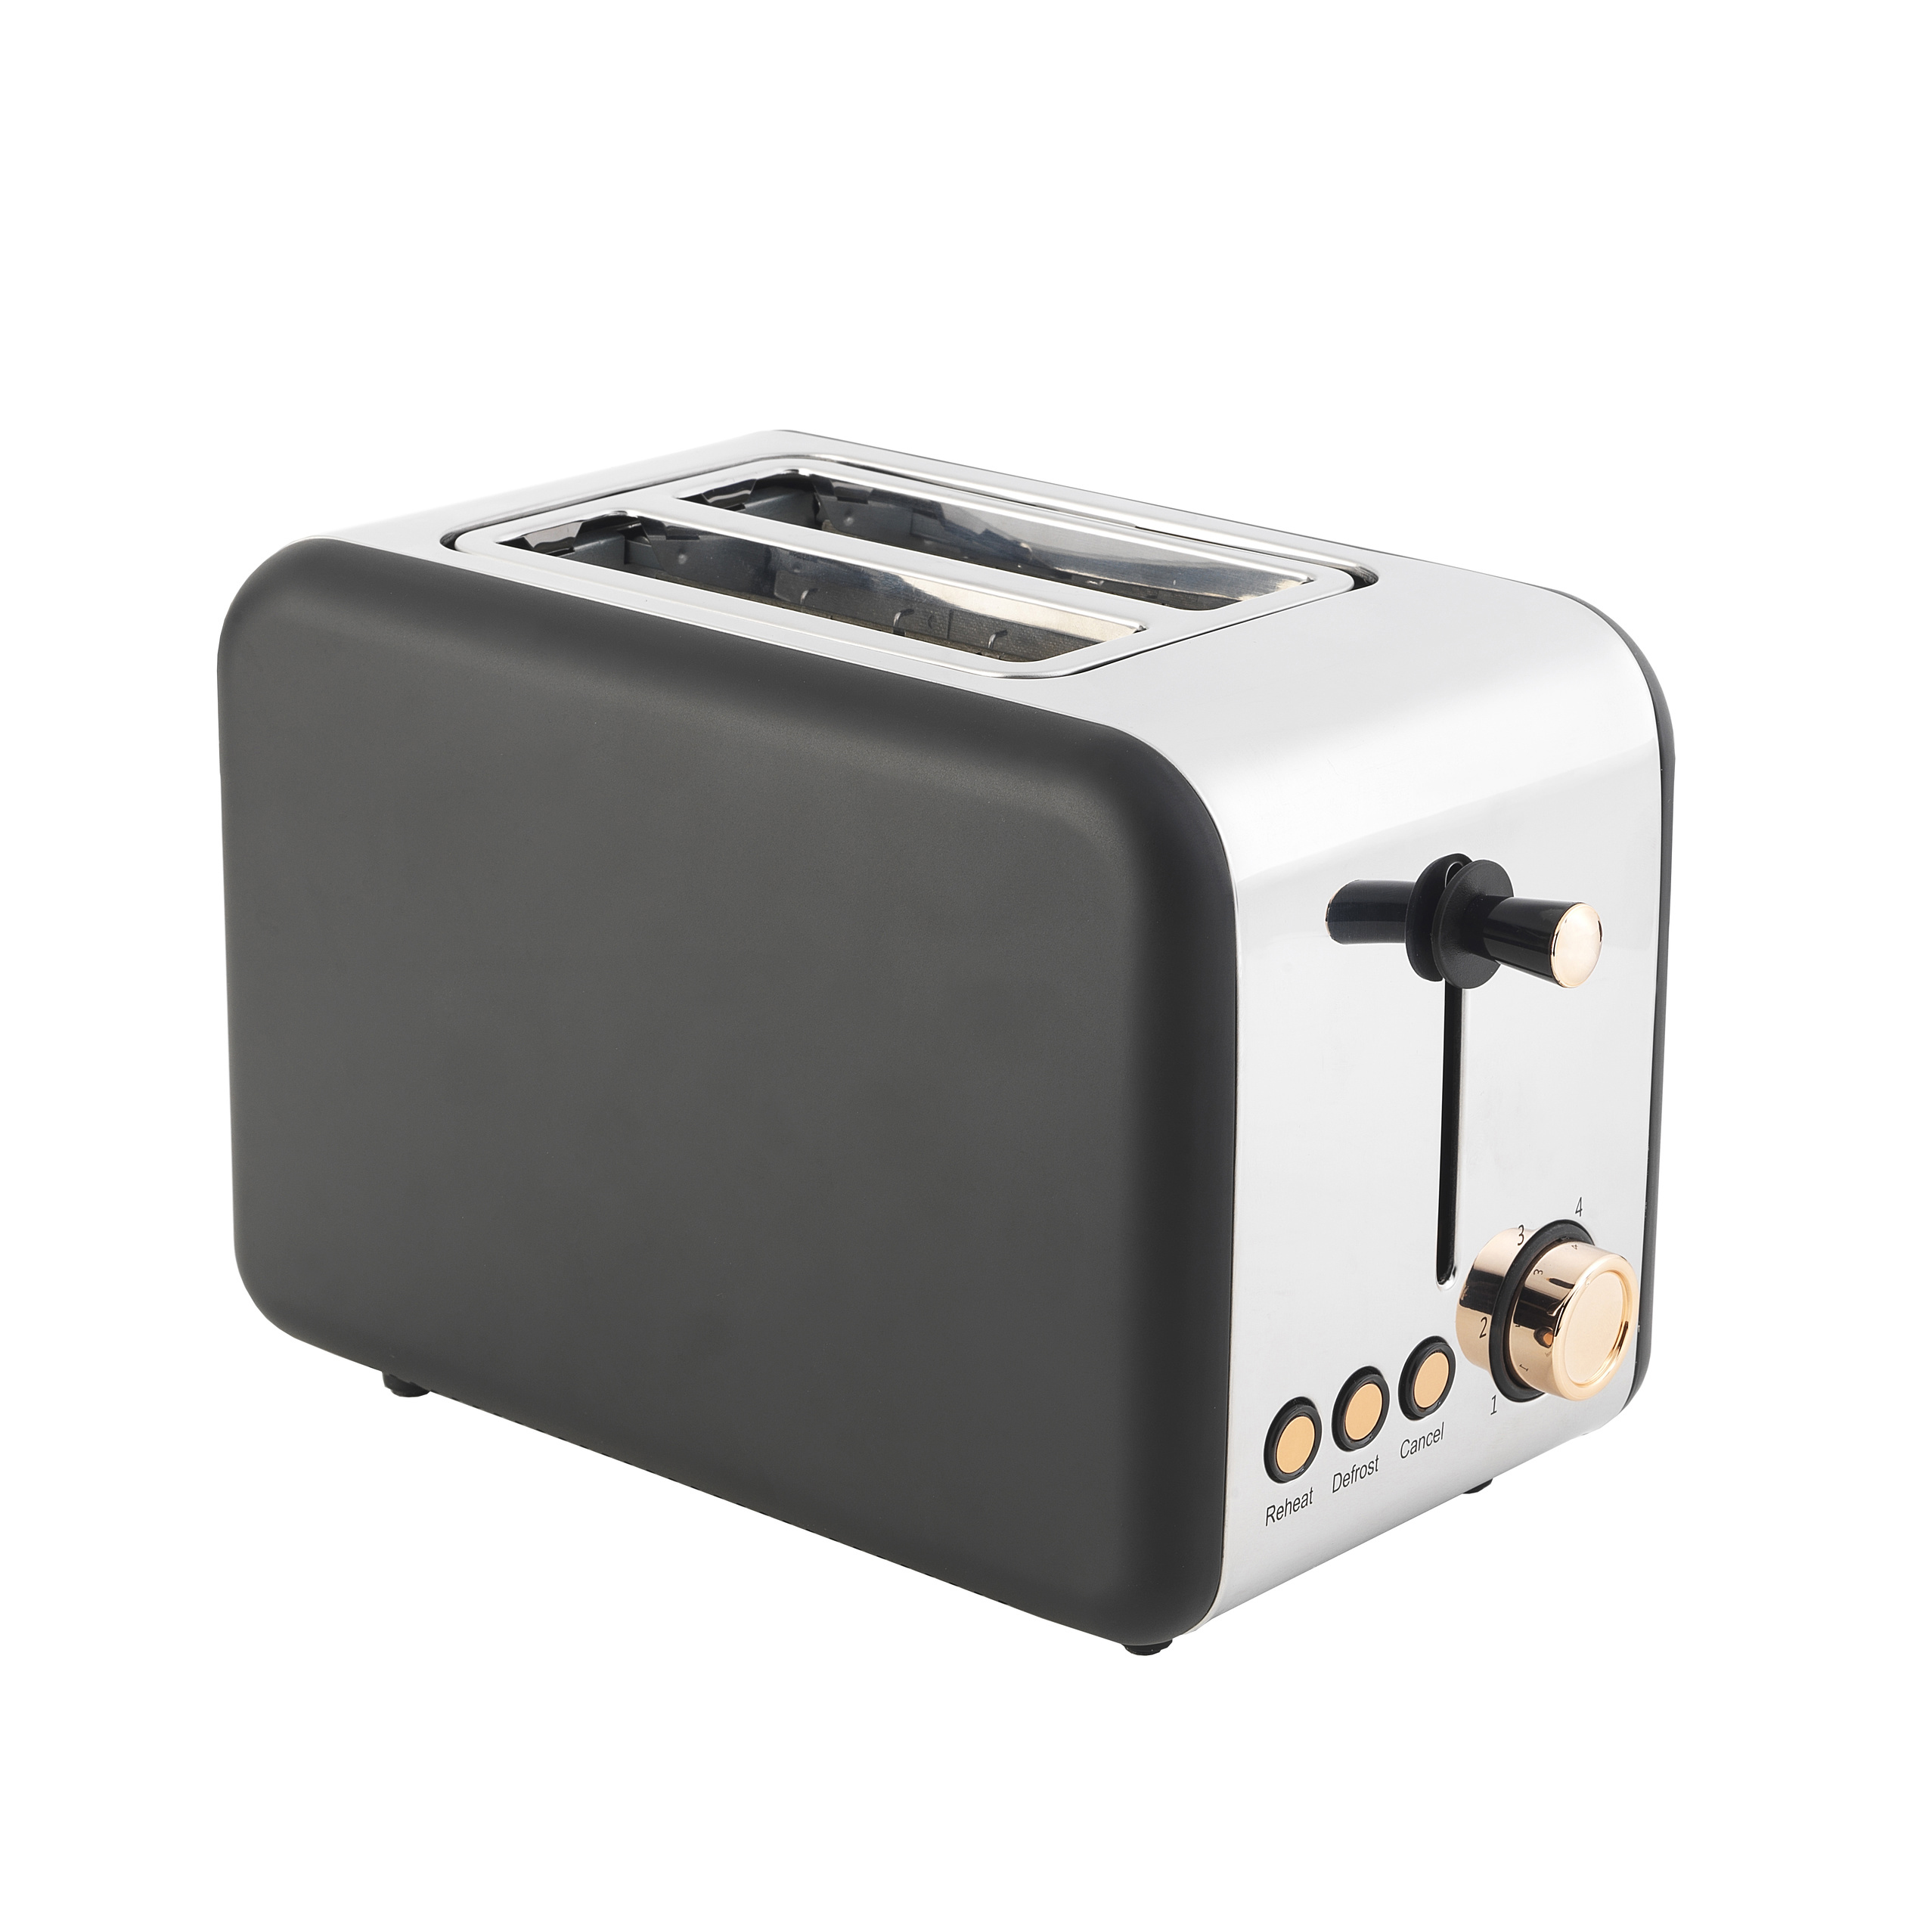 Salter Ek2652rg 2 Slice Toaster 850w Rose Gold Edition